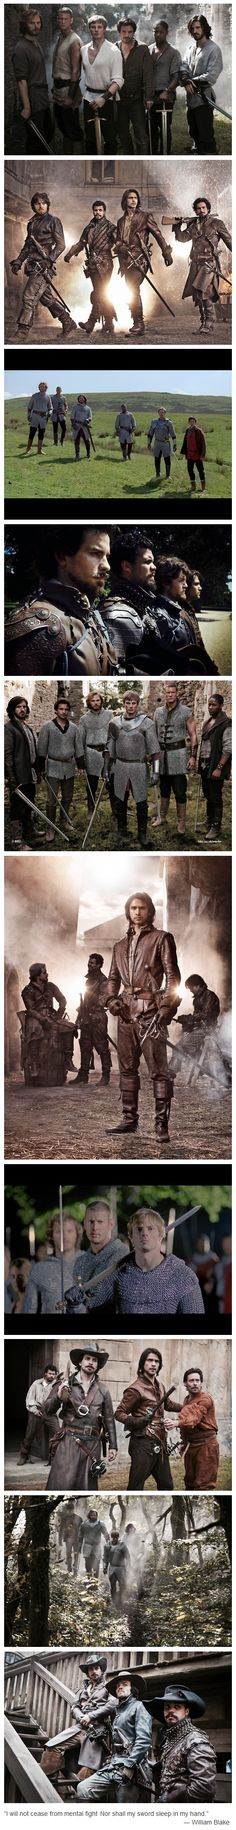 """The Musketeers & Merlin - Of Knights and Musketeers: """"I will not cease from mental fight. Nor shall my sword sleep in my hand."""" - William Blake"""